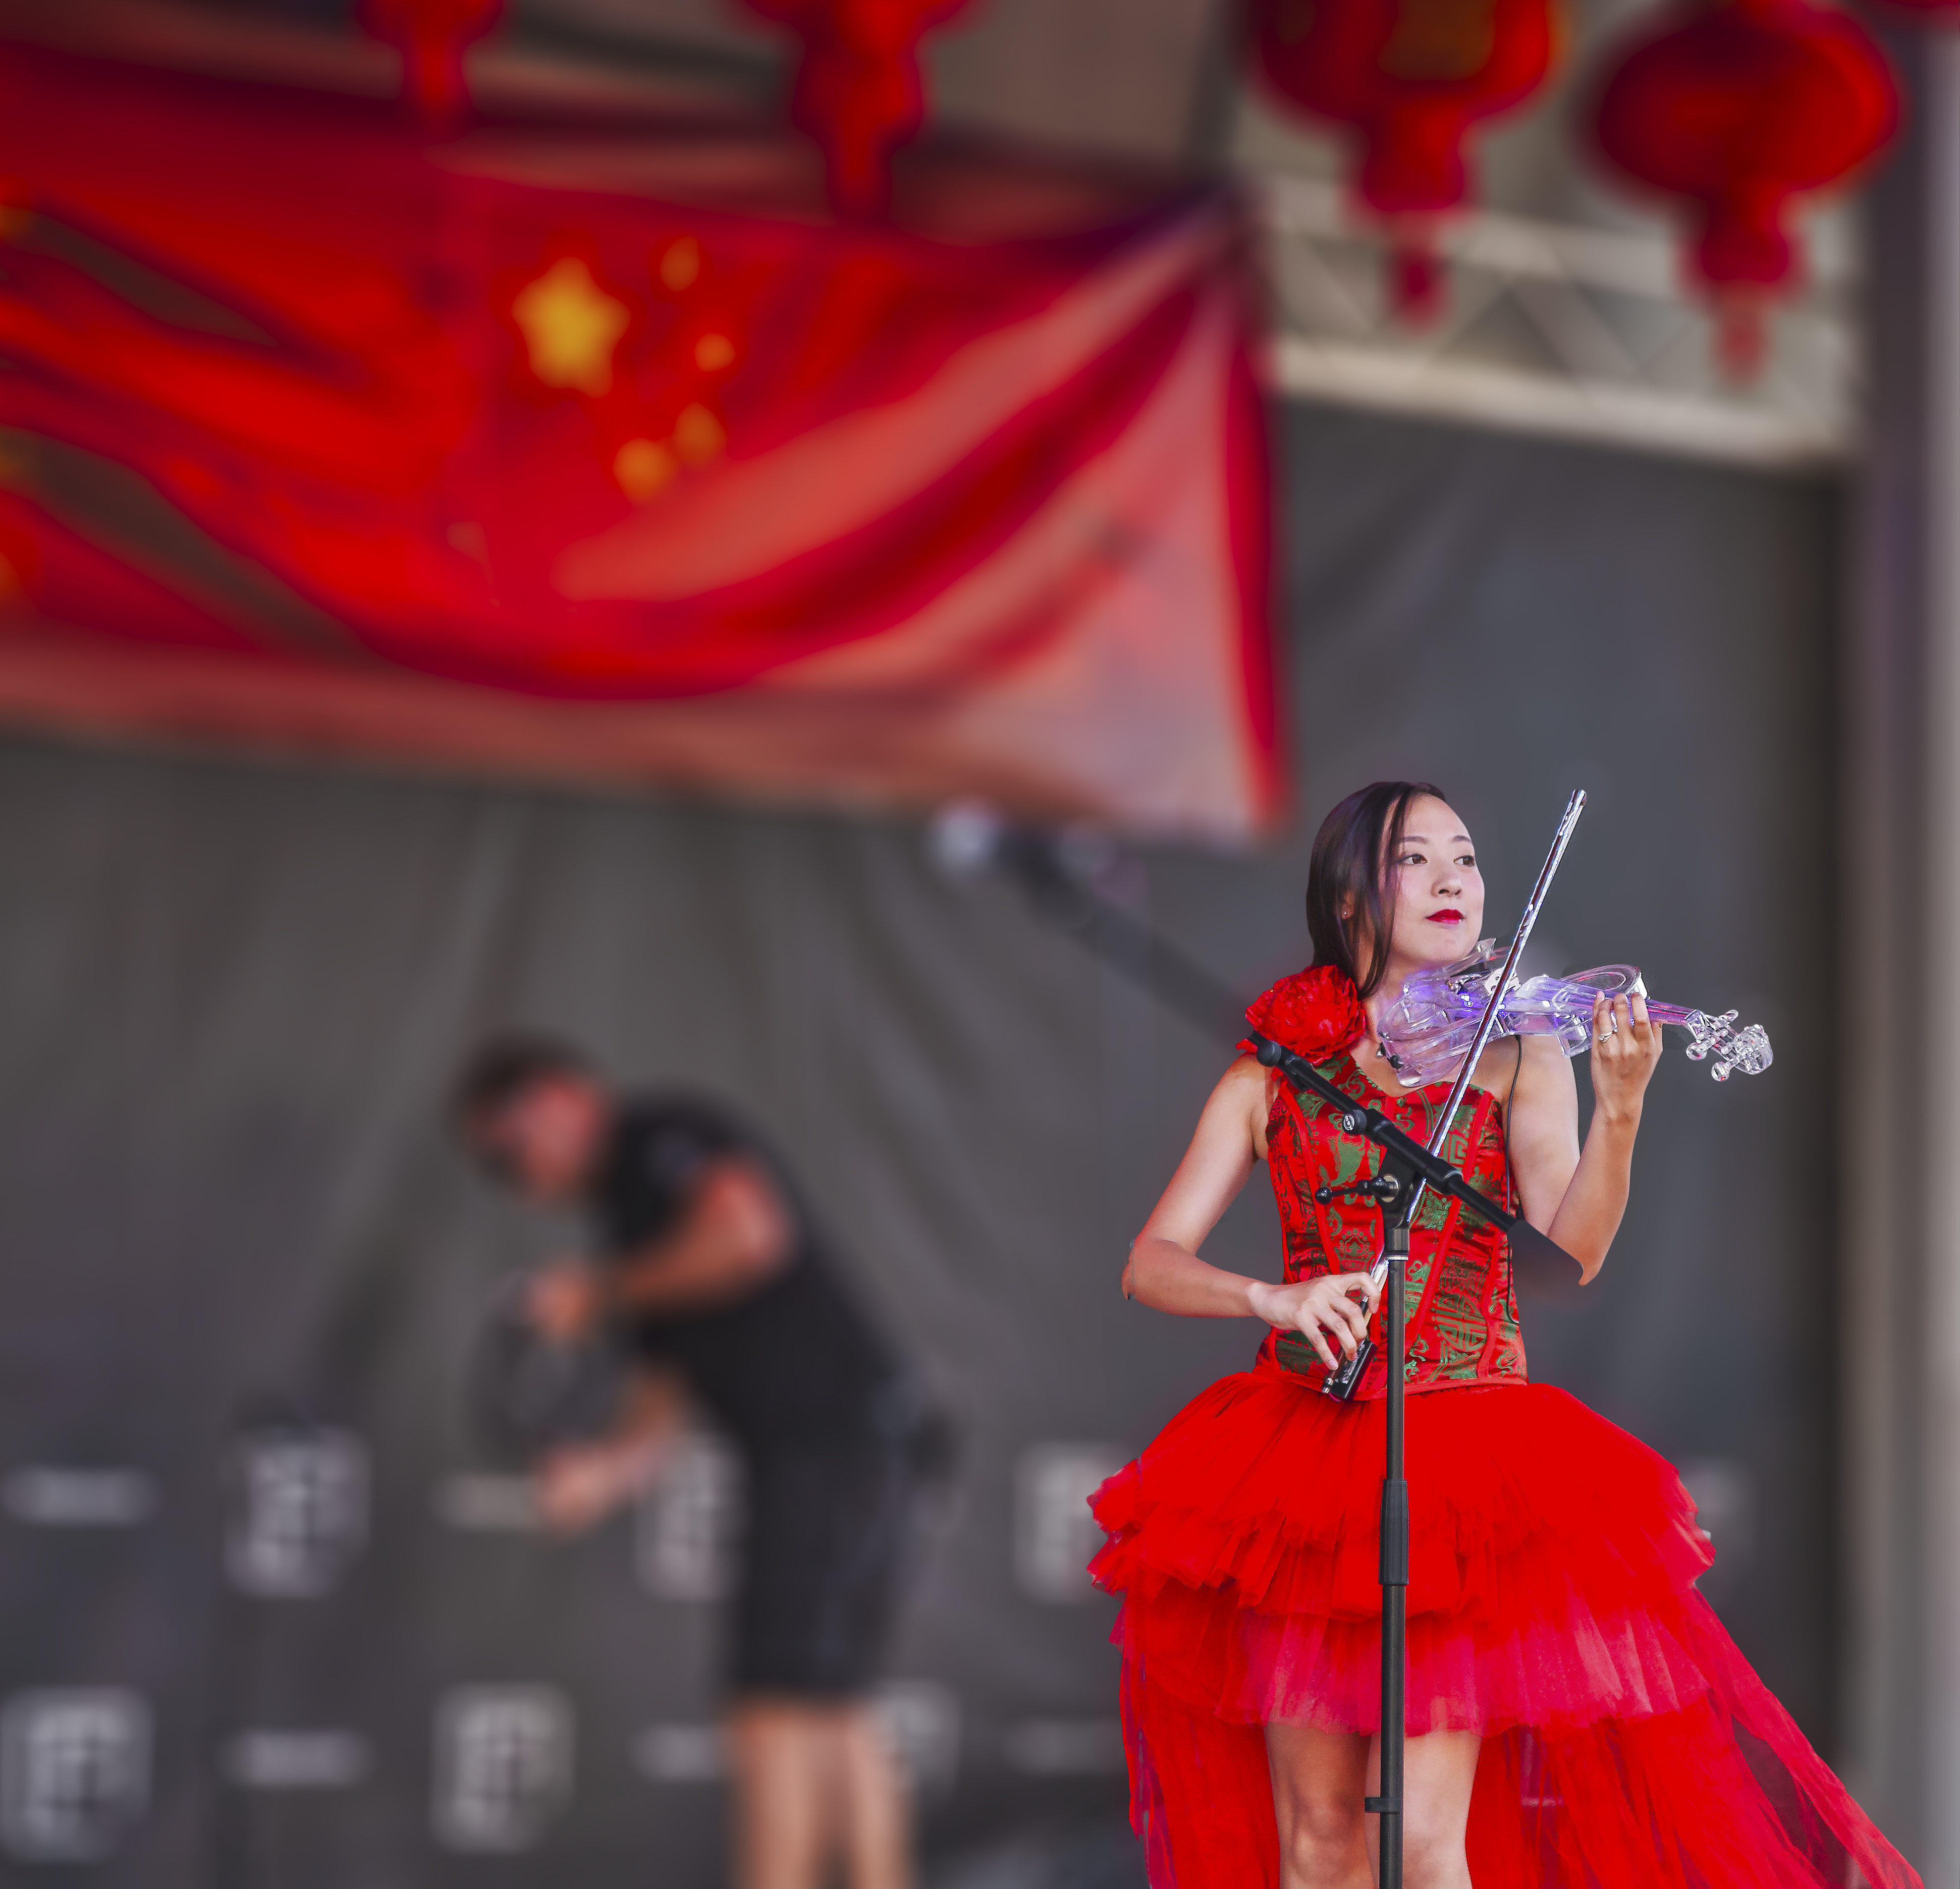 Woman Playing Electric Flying on Stage